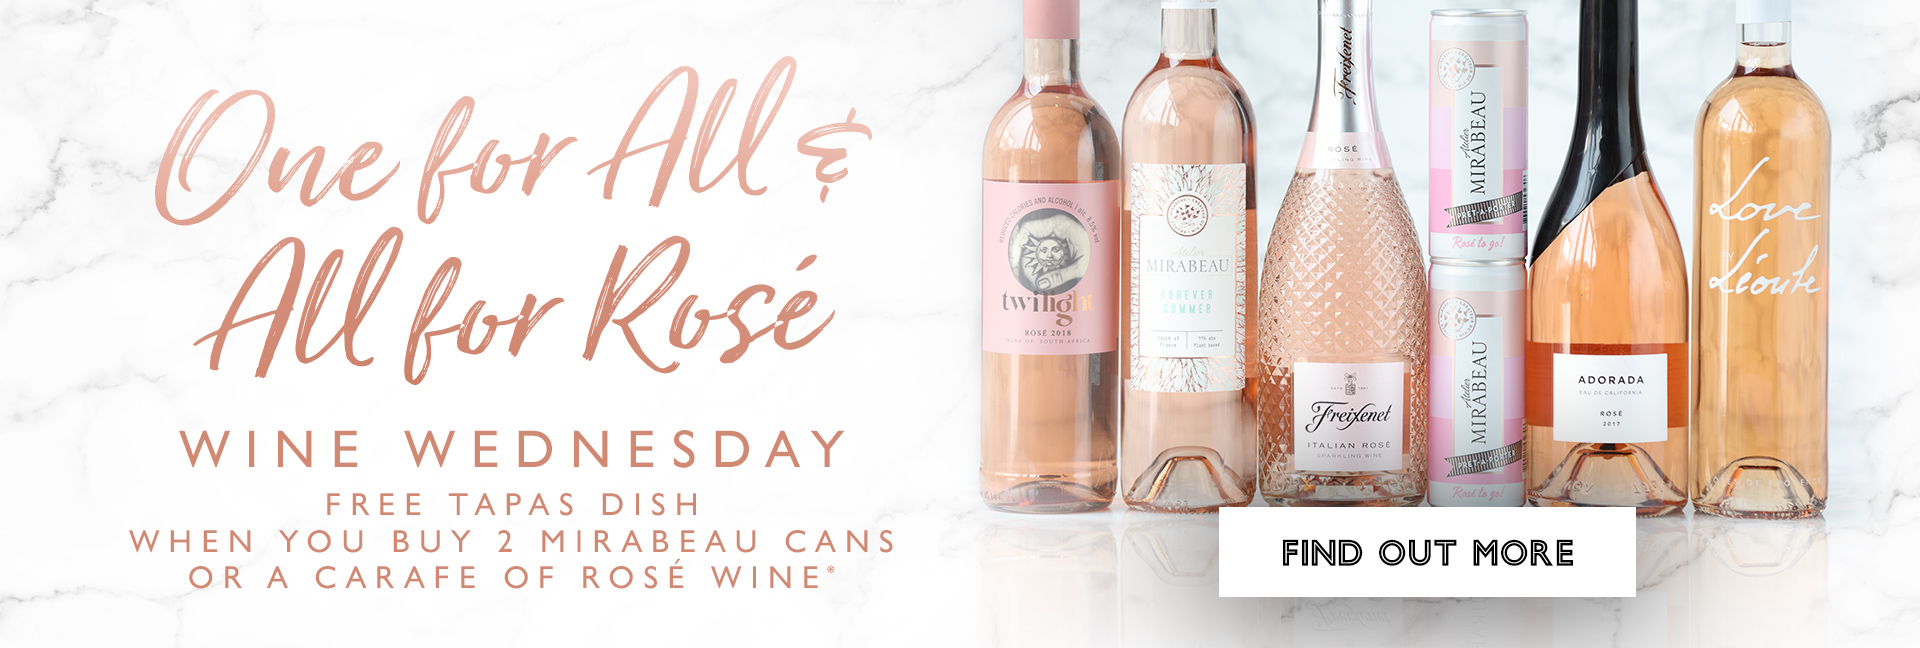 Wine Wednesdays at All Bar One Liverpool